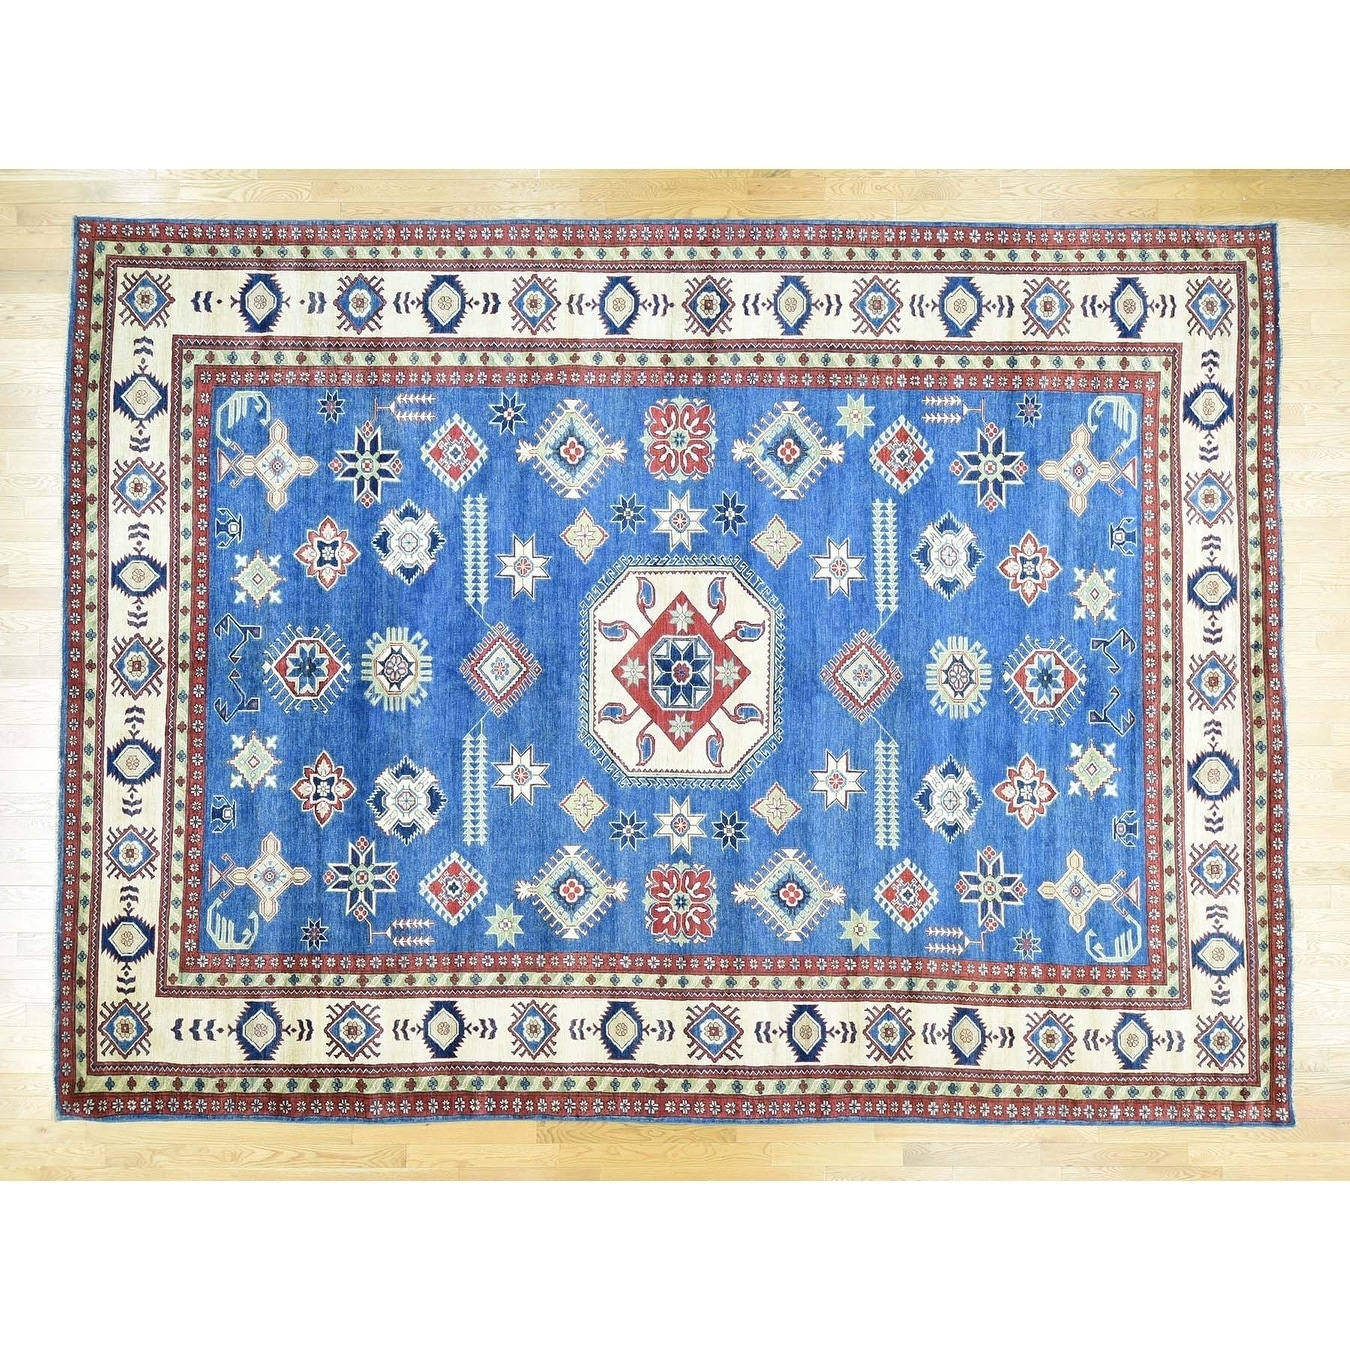 Hand Knotted Blue Kazak with Wool Oriental Rug - 109 x 146